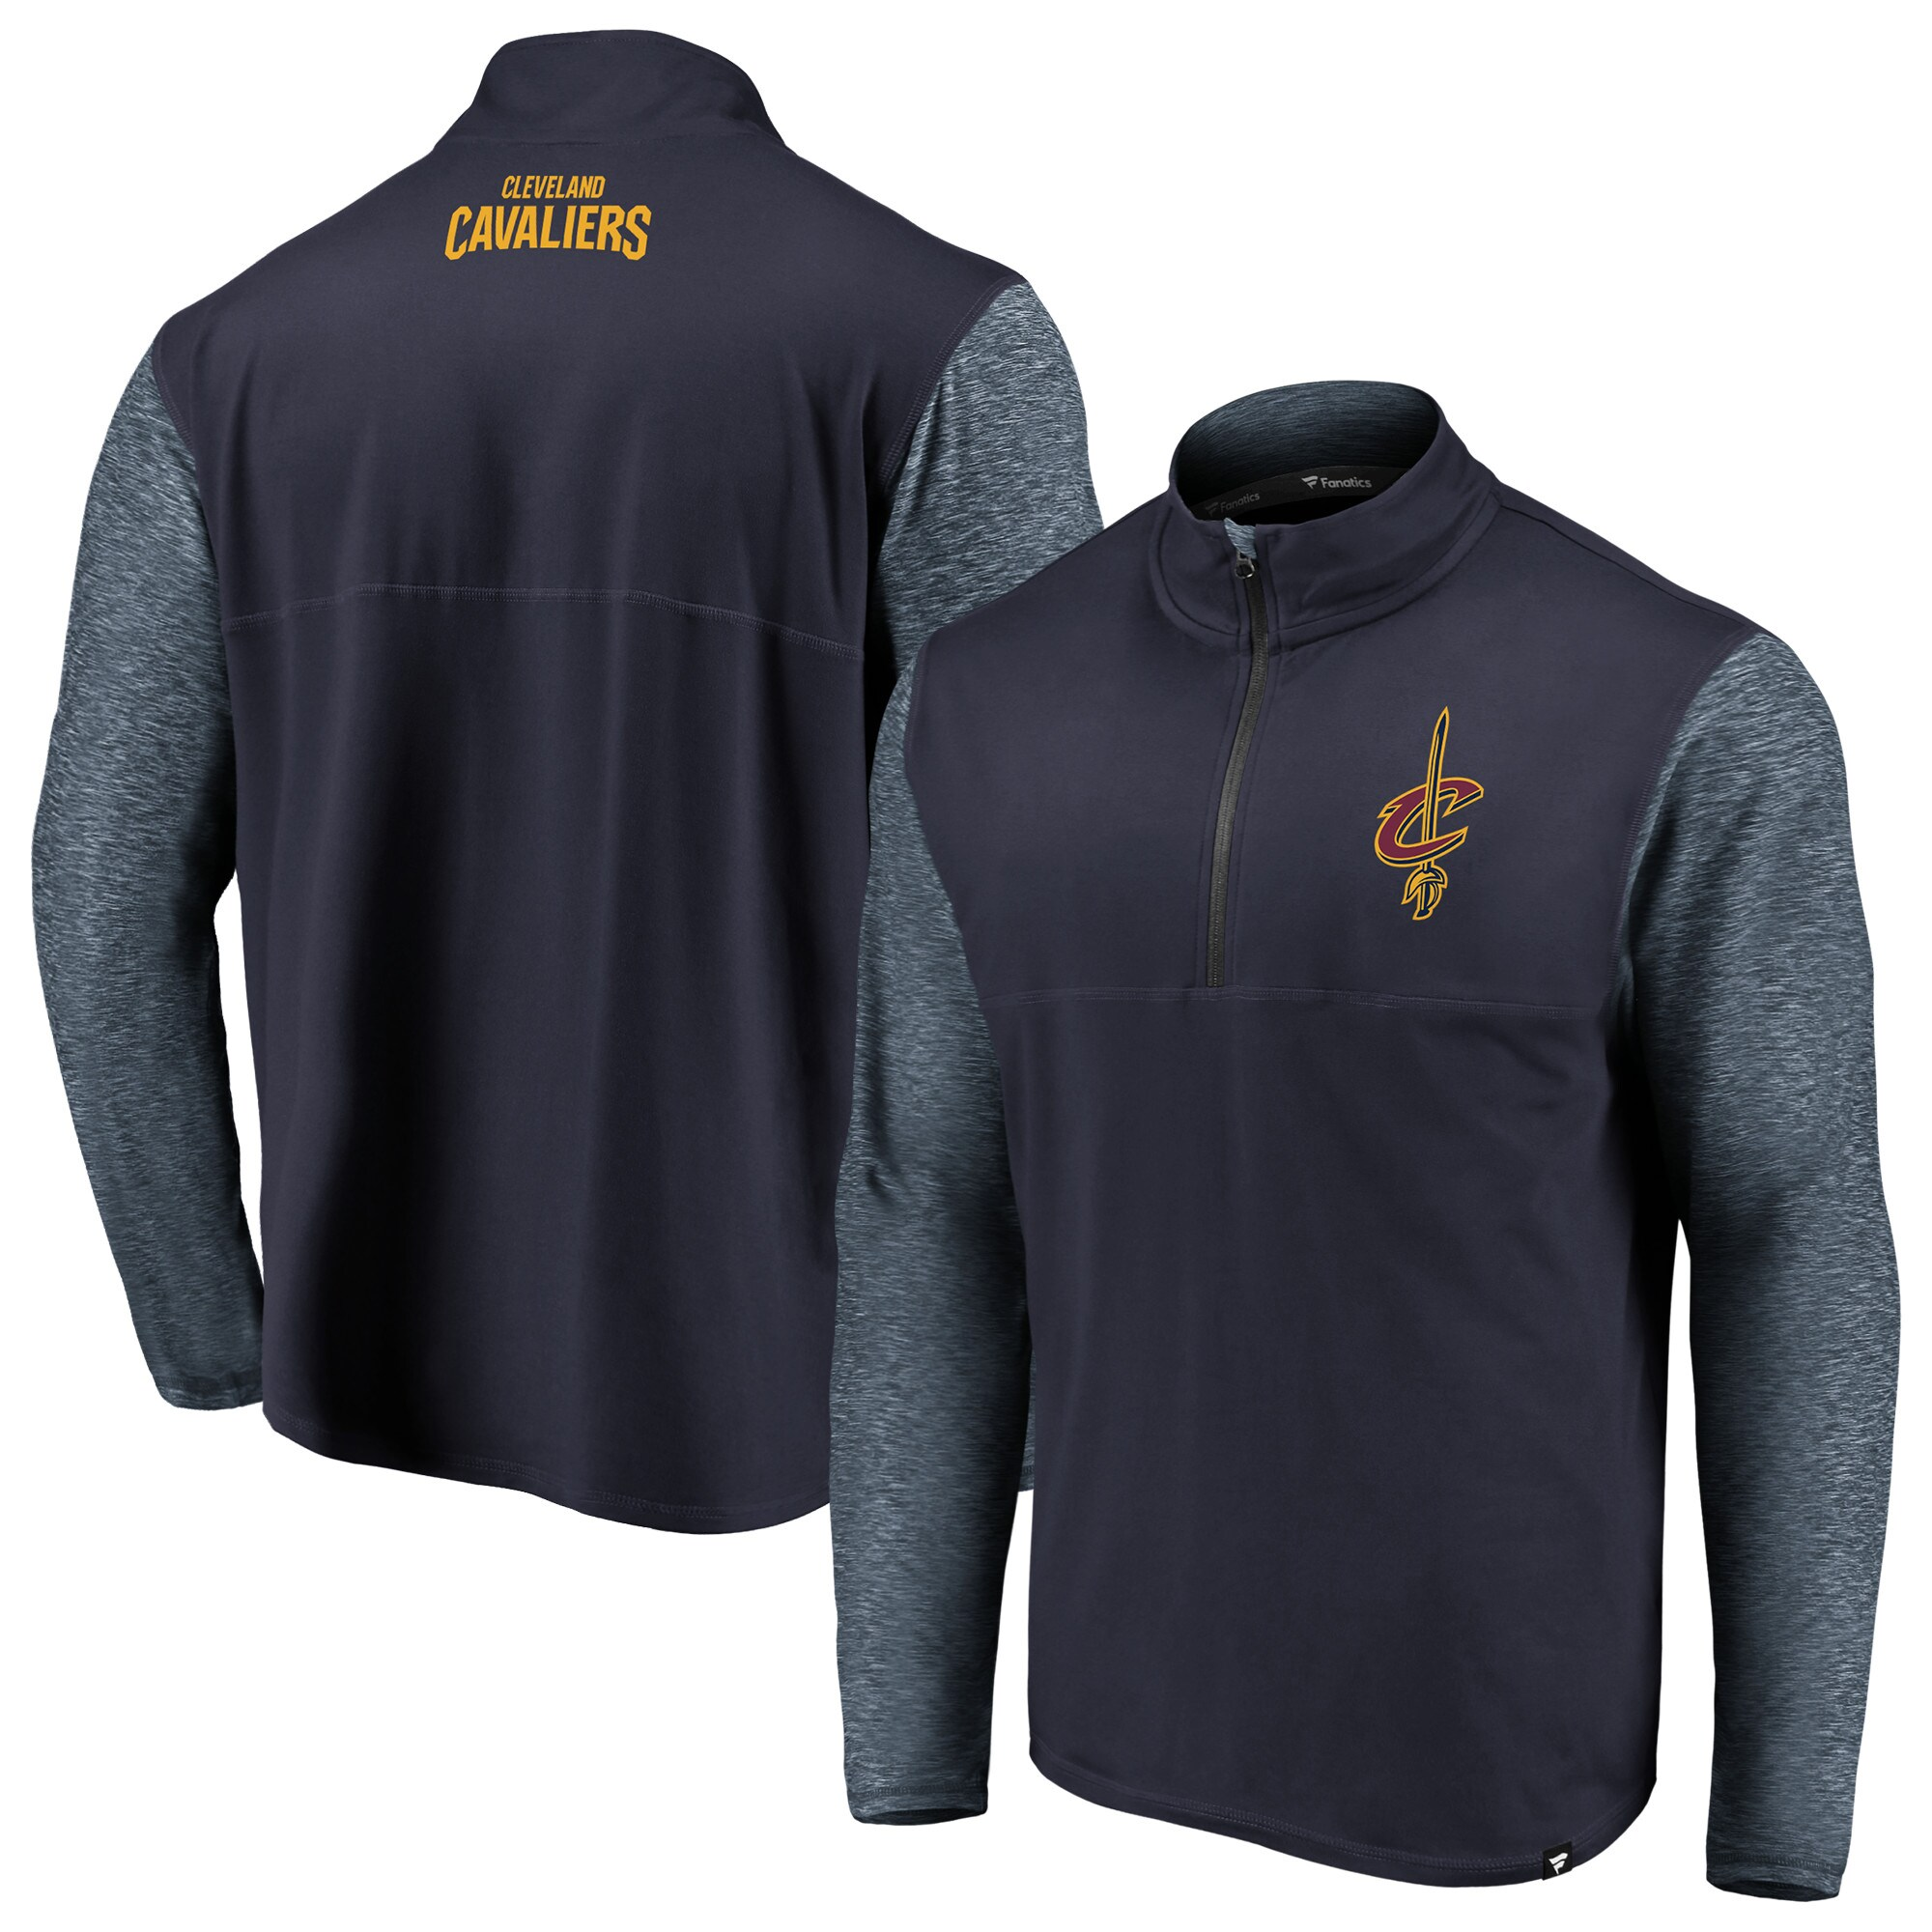 Cleveland Cavaliers Fanatics Branded Made to Move Static Performance Quarter-Zip Pullover Jacket - Navy/Heathered Navy